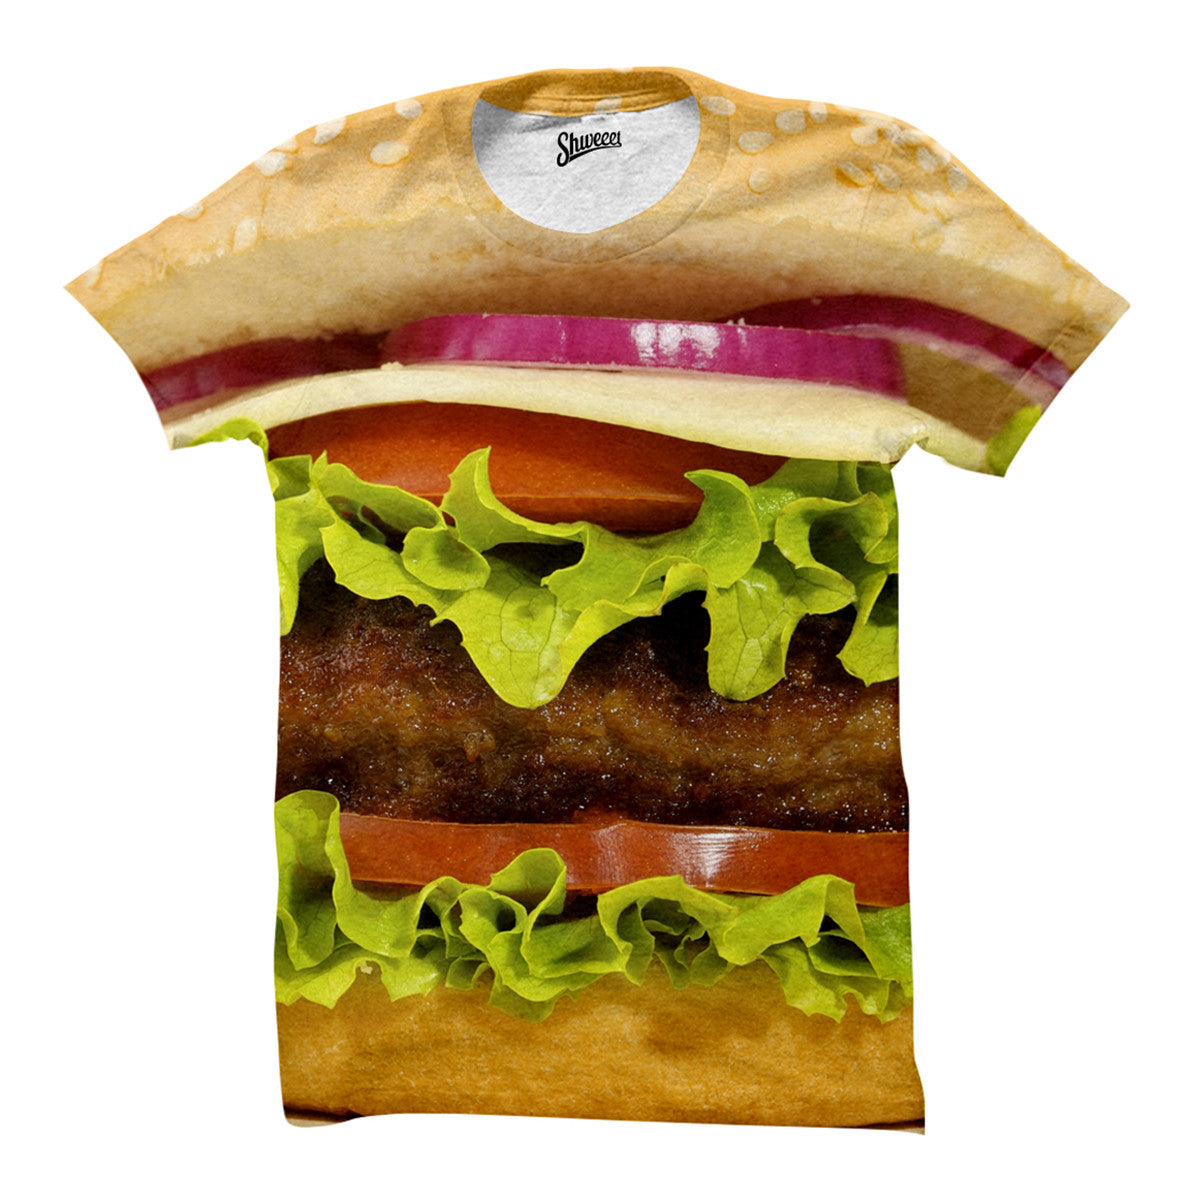 Burger T-shirt - Shweeet